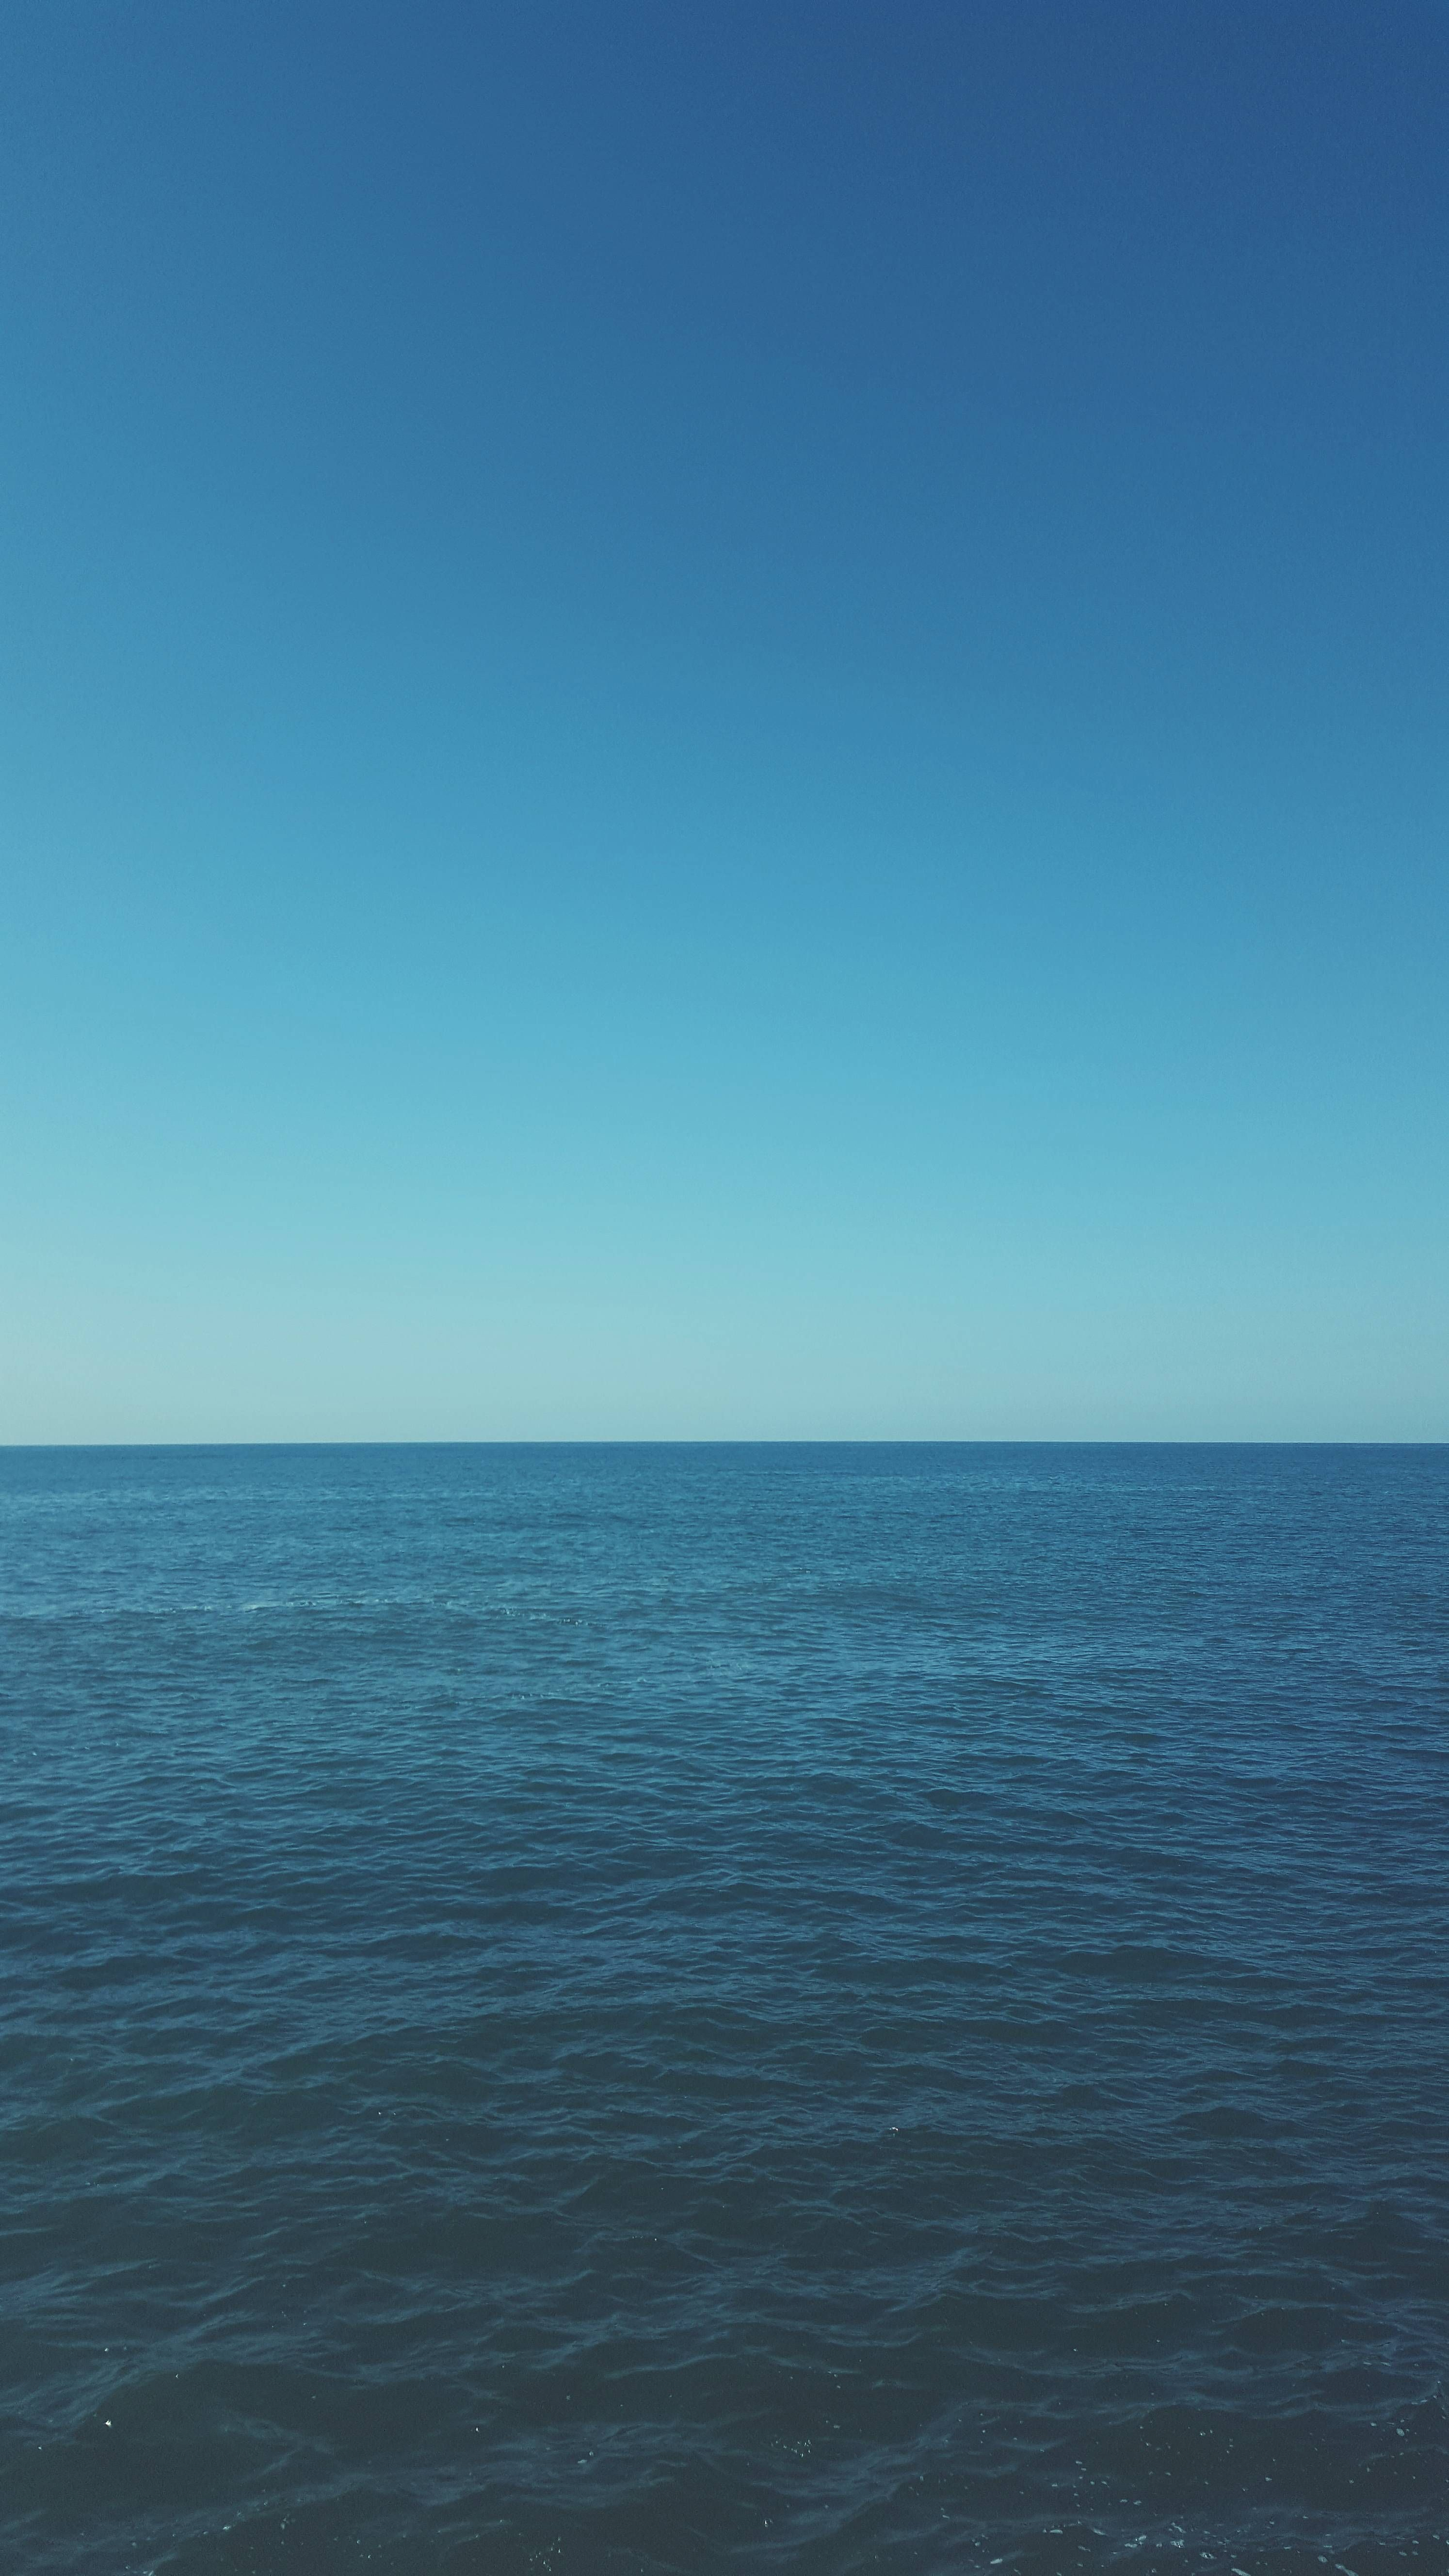 Itap Of The Sky The Ocean And The Horizon Photography Via R Itookapicture By A Simple Human Landscape Background Sky Ocean